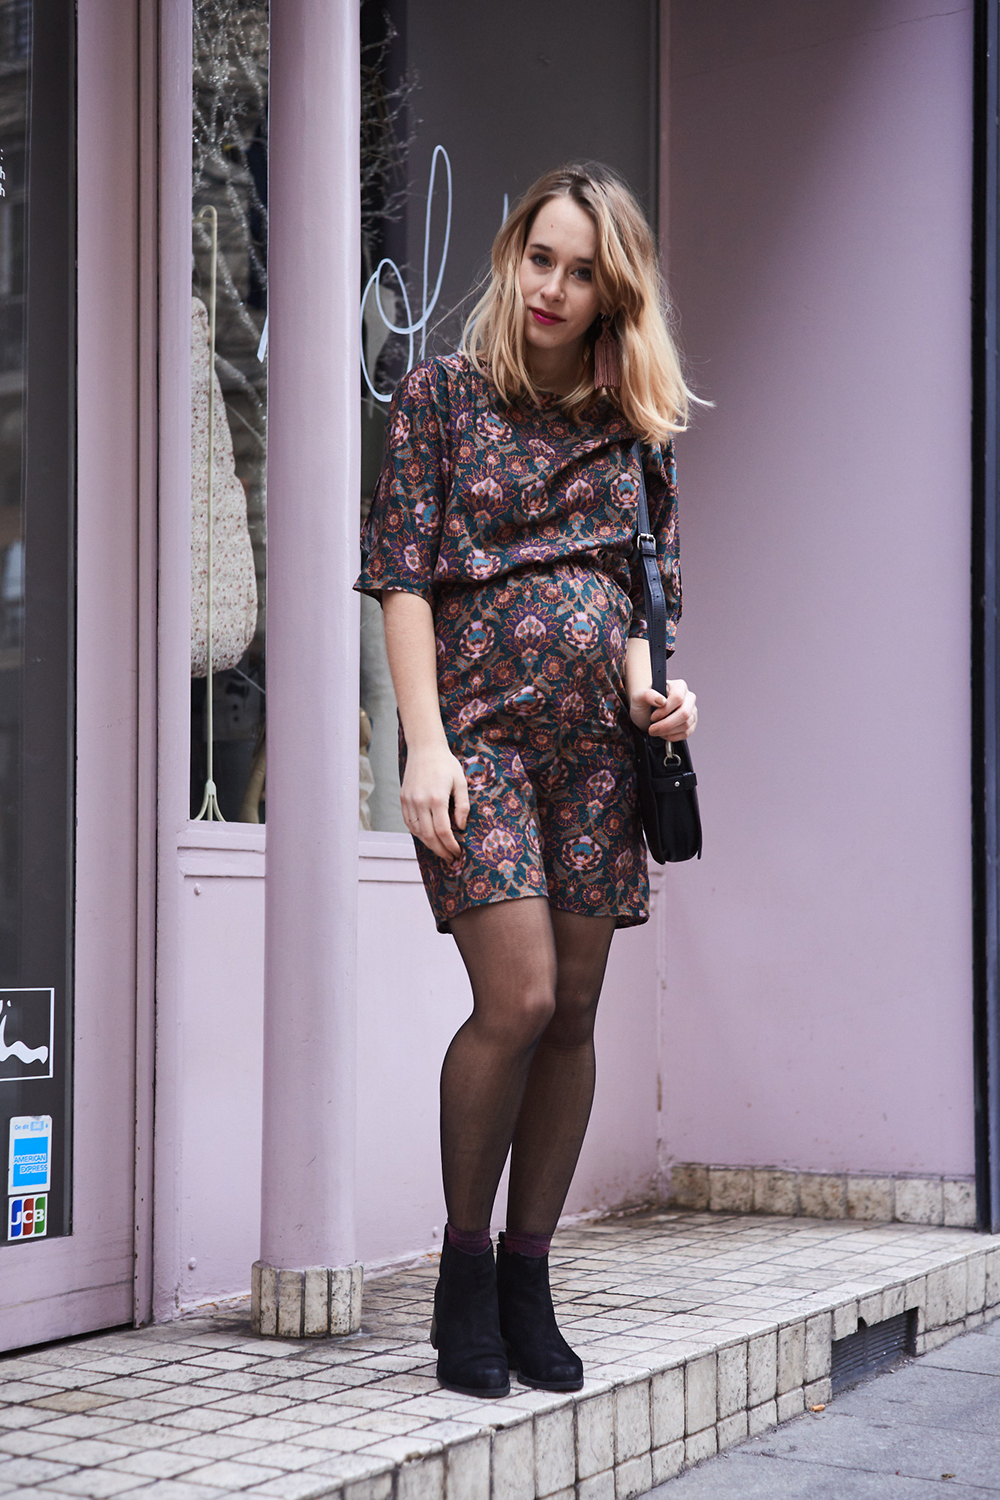 streetstyle-pregnant-woman-printed-dress